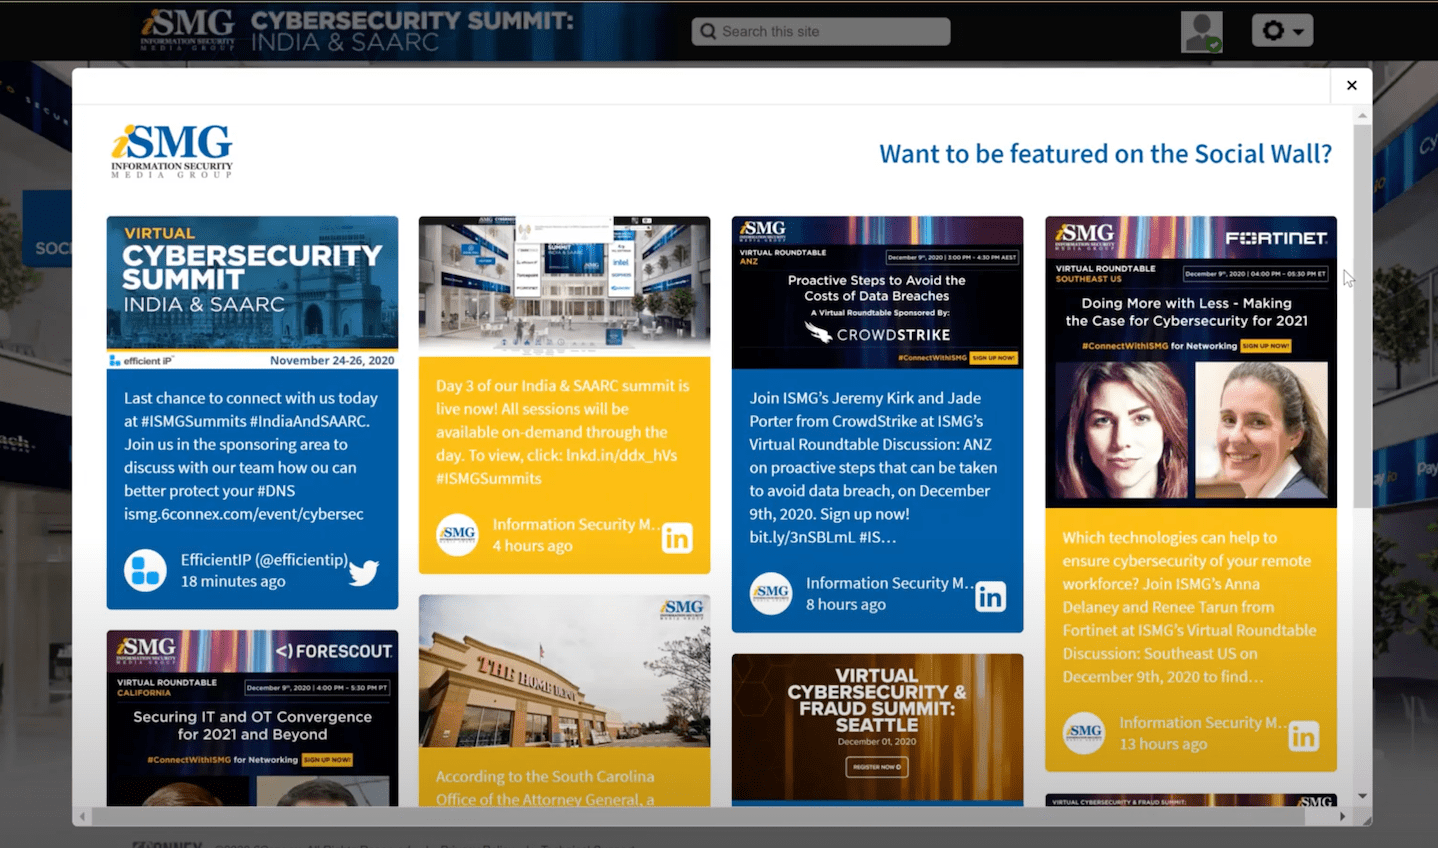 iSMG Cybersecurity Summit displays a social media feed with many comments and questions about the talks.